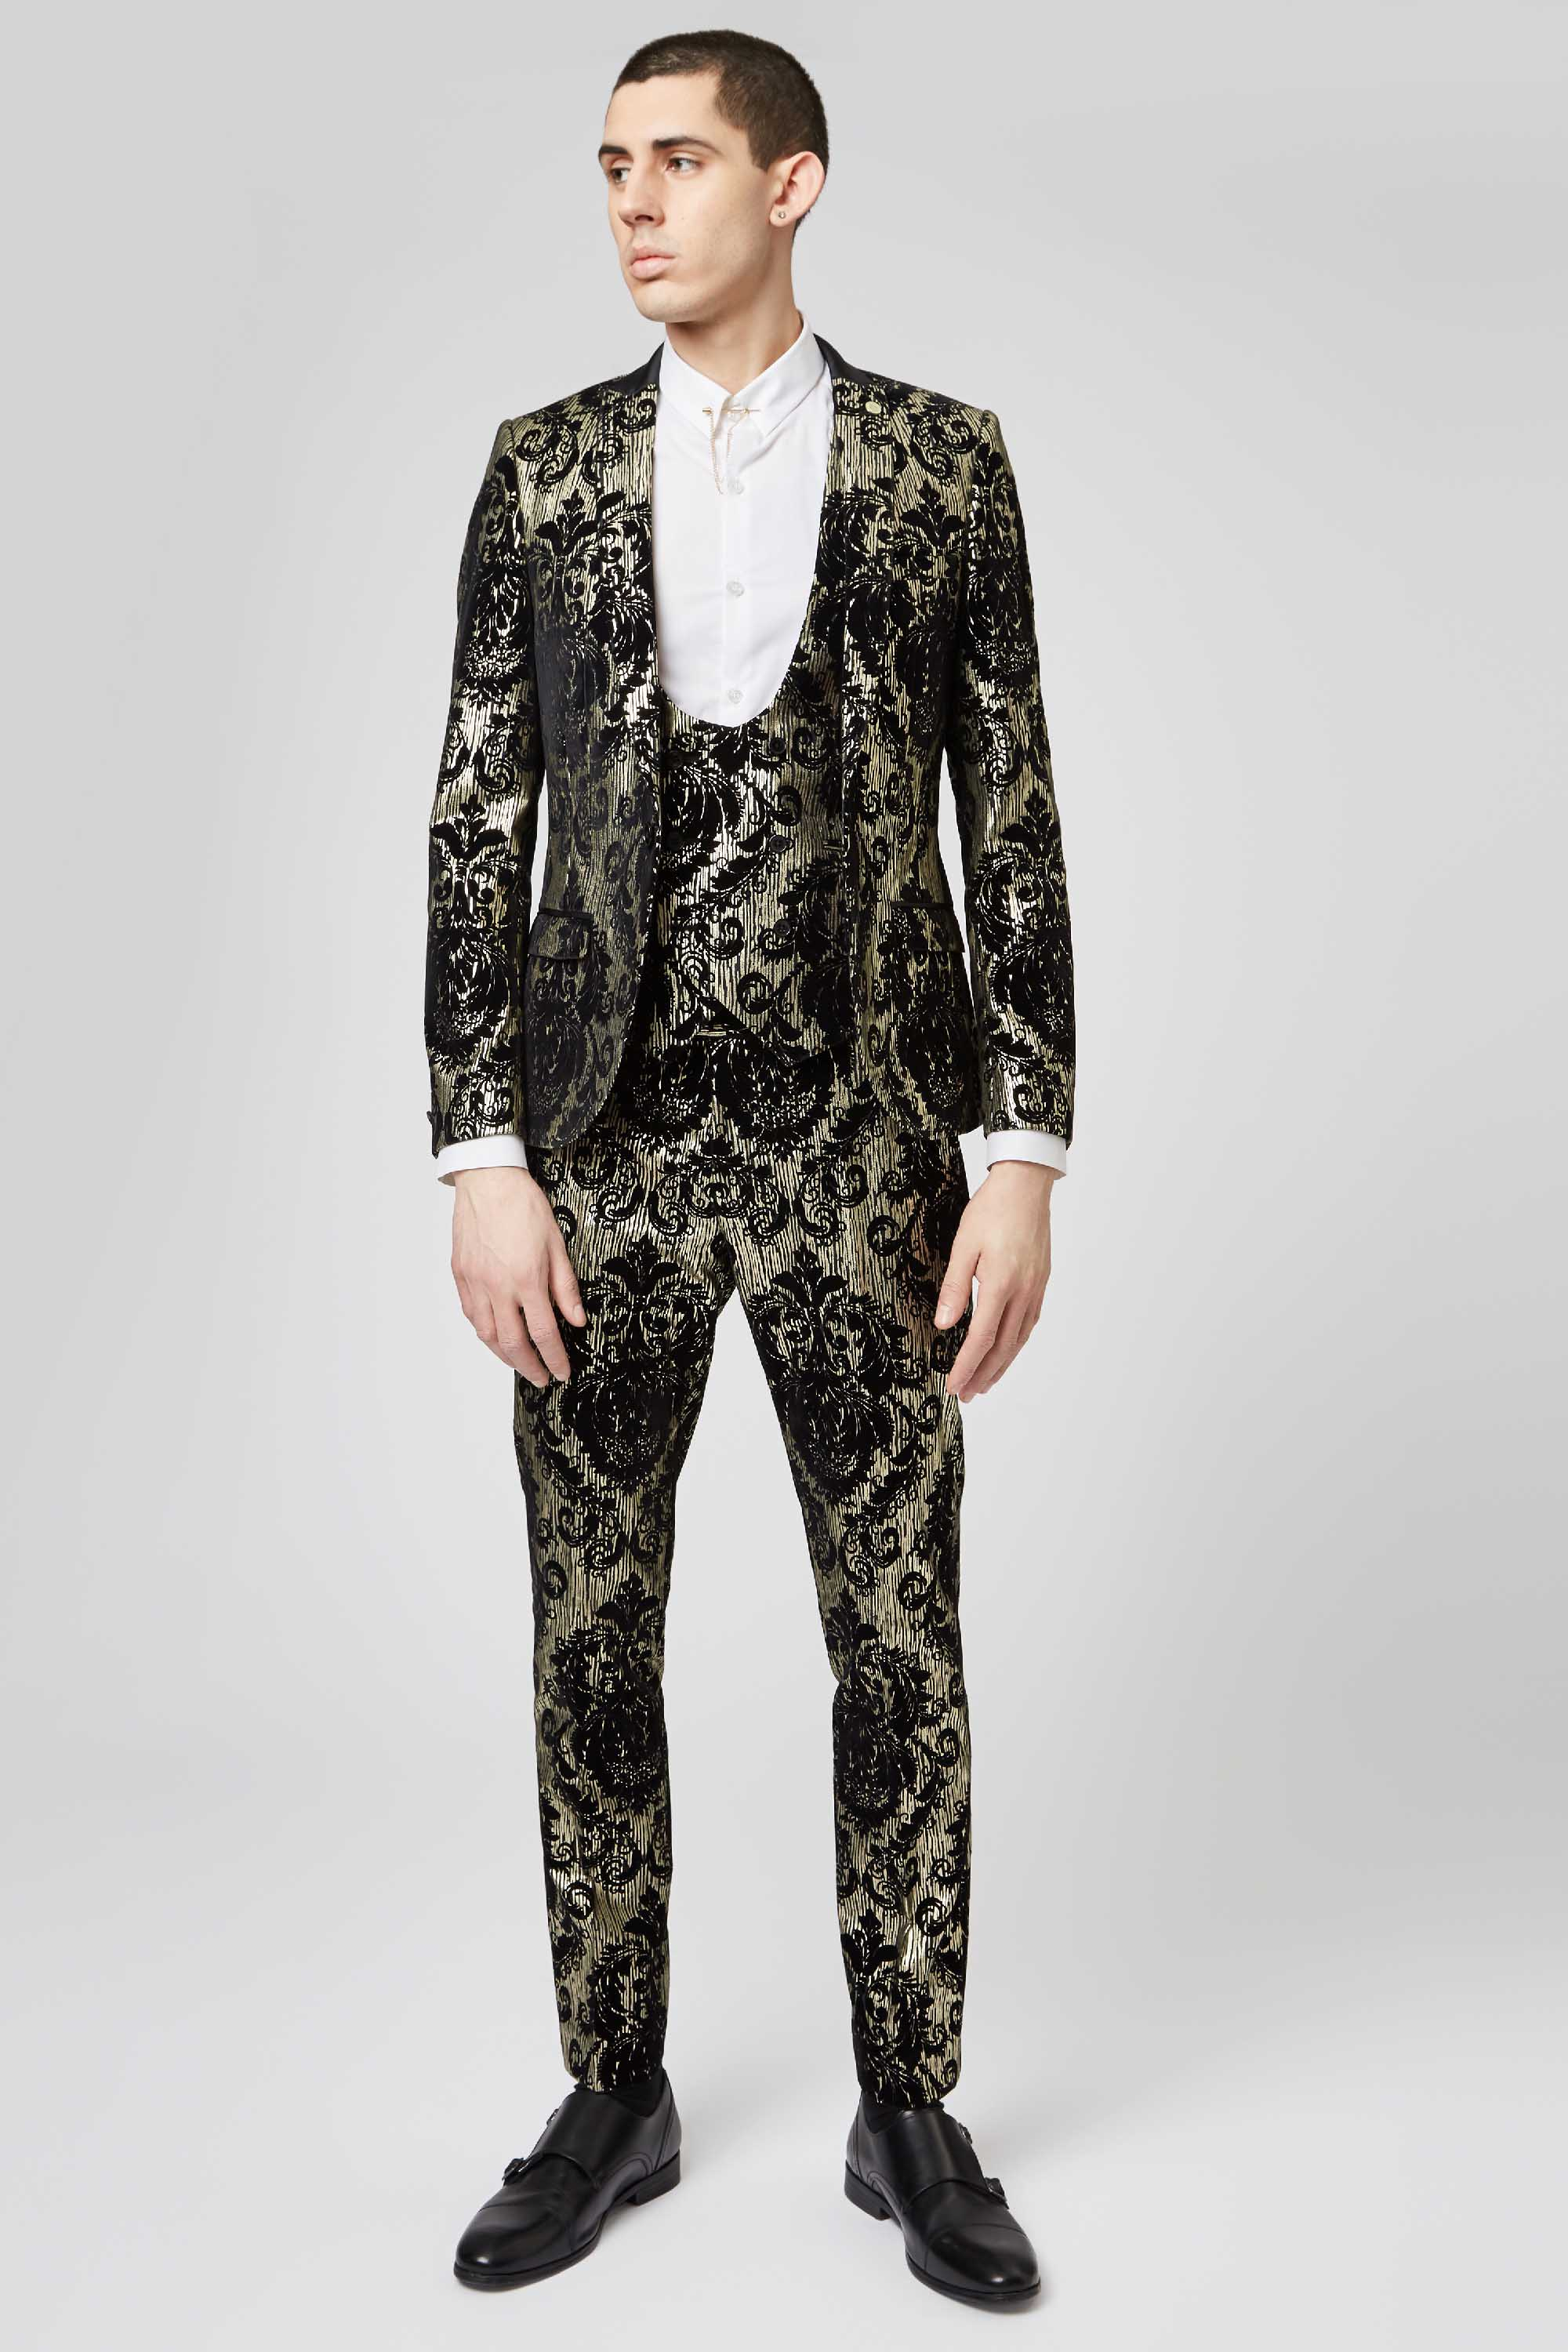 PRYOR SKINNY FIT BLACK jacket WITH BAROQUE FLOCK AND FOIL PRINT